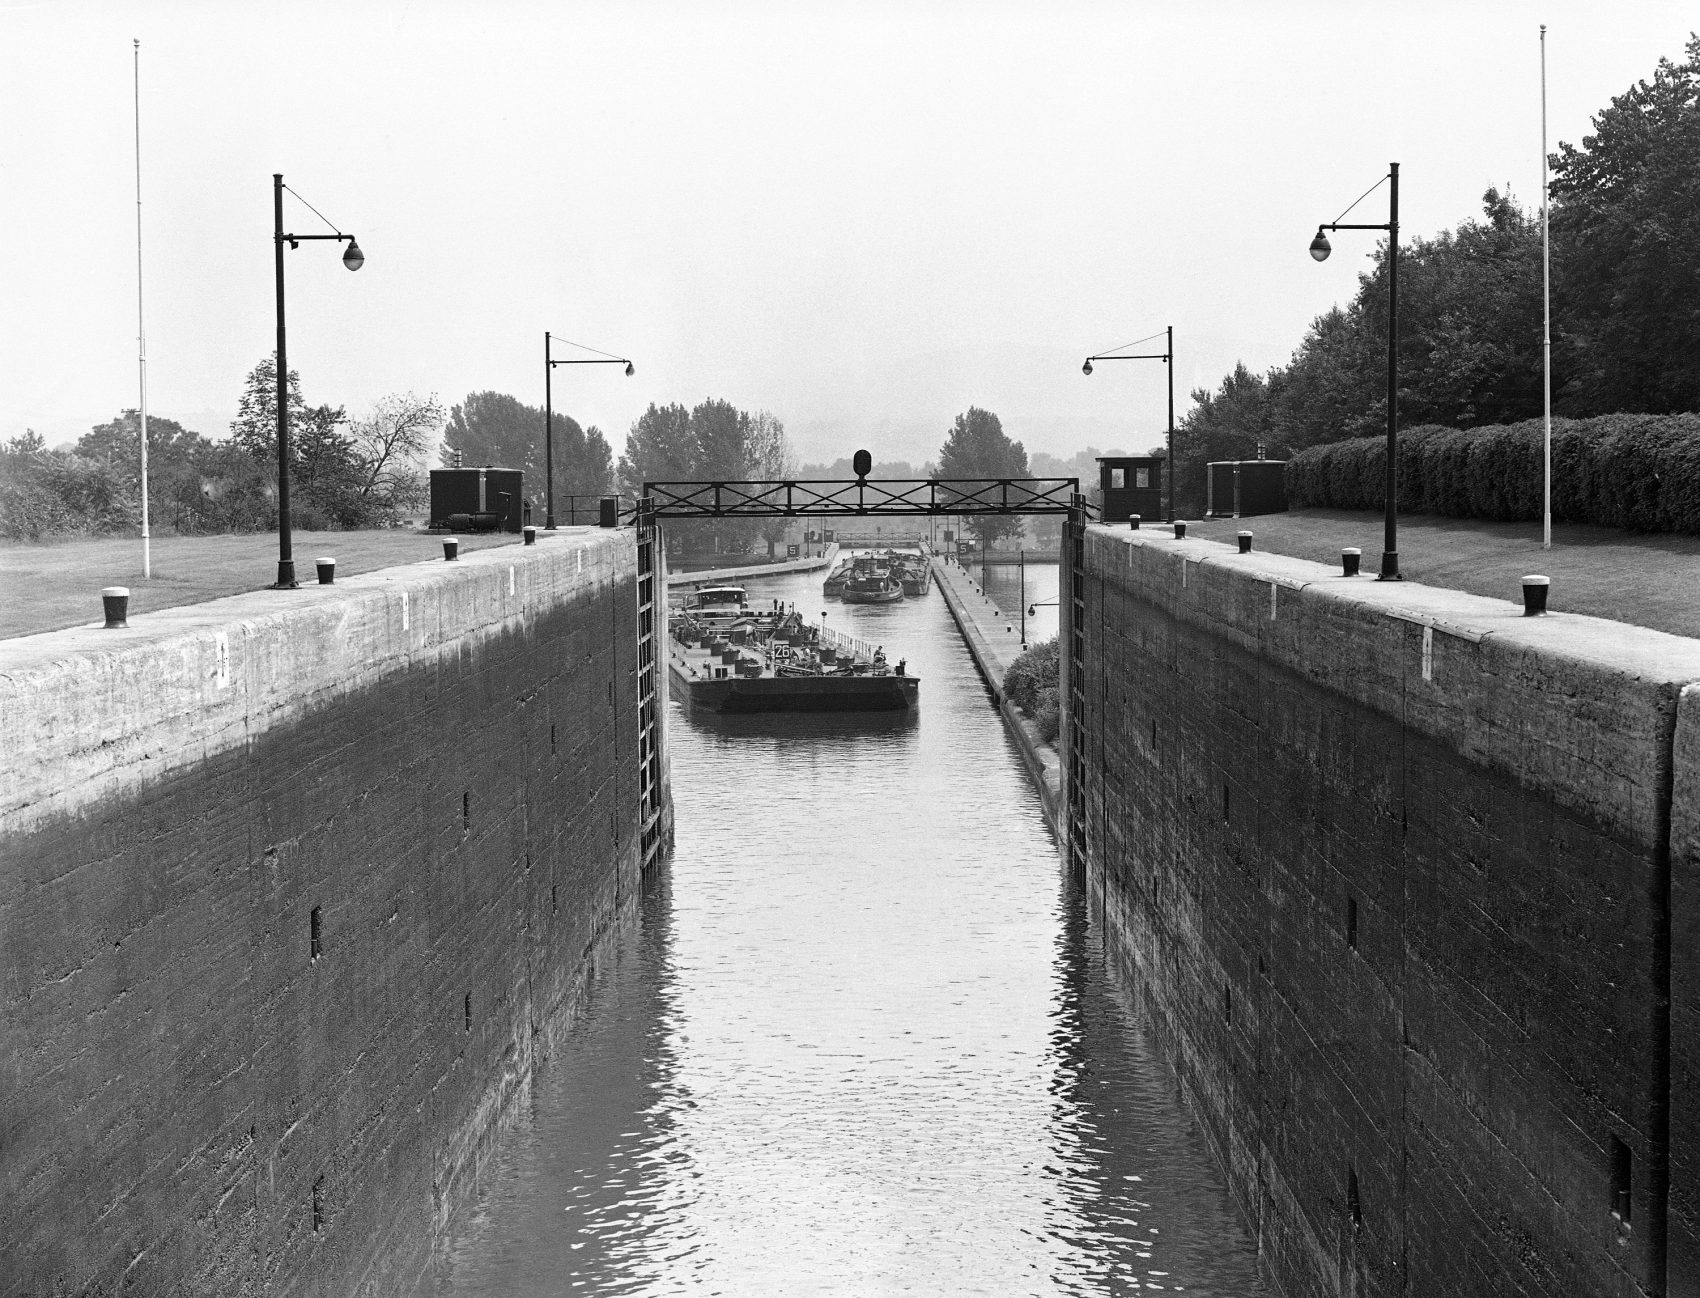 Photograph of Erie Canal